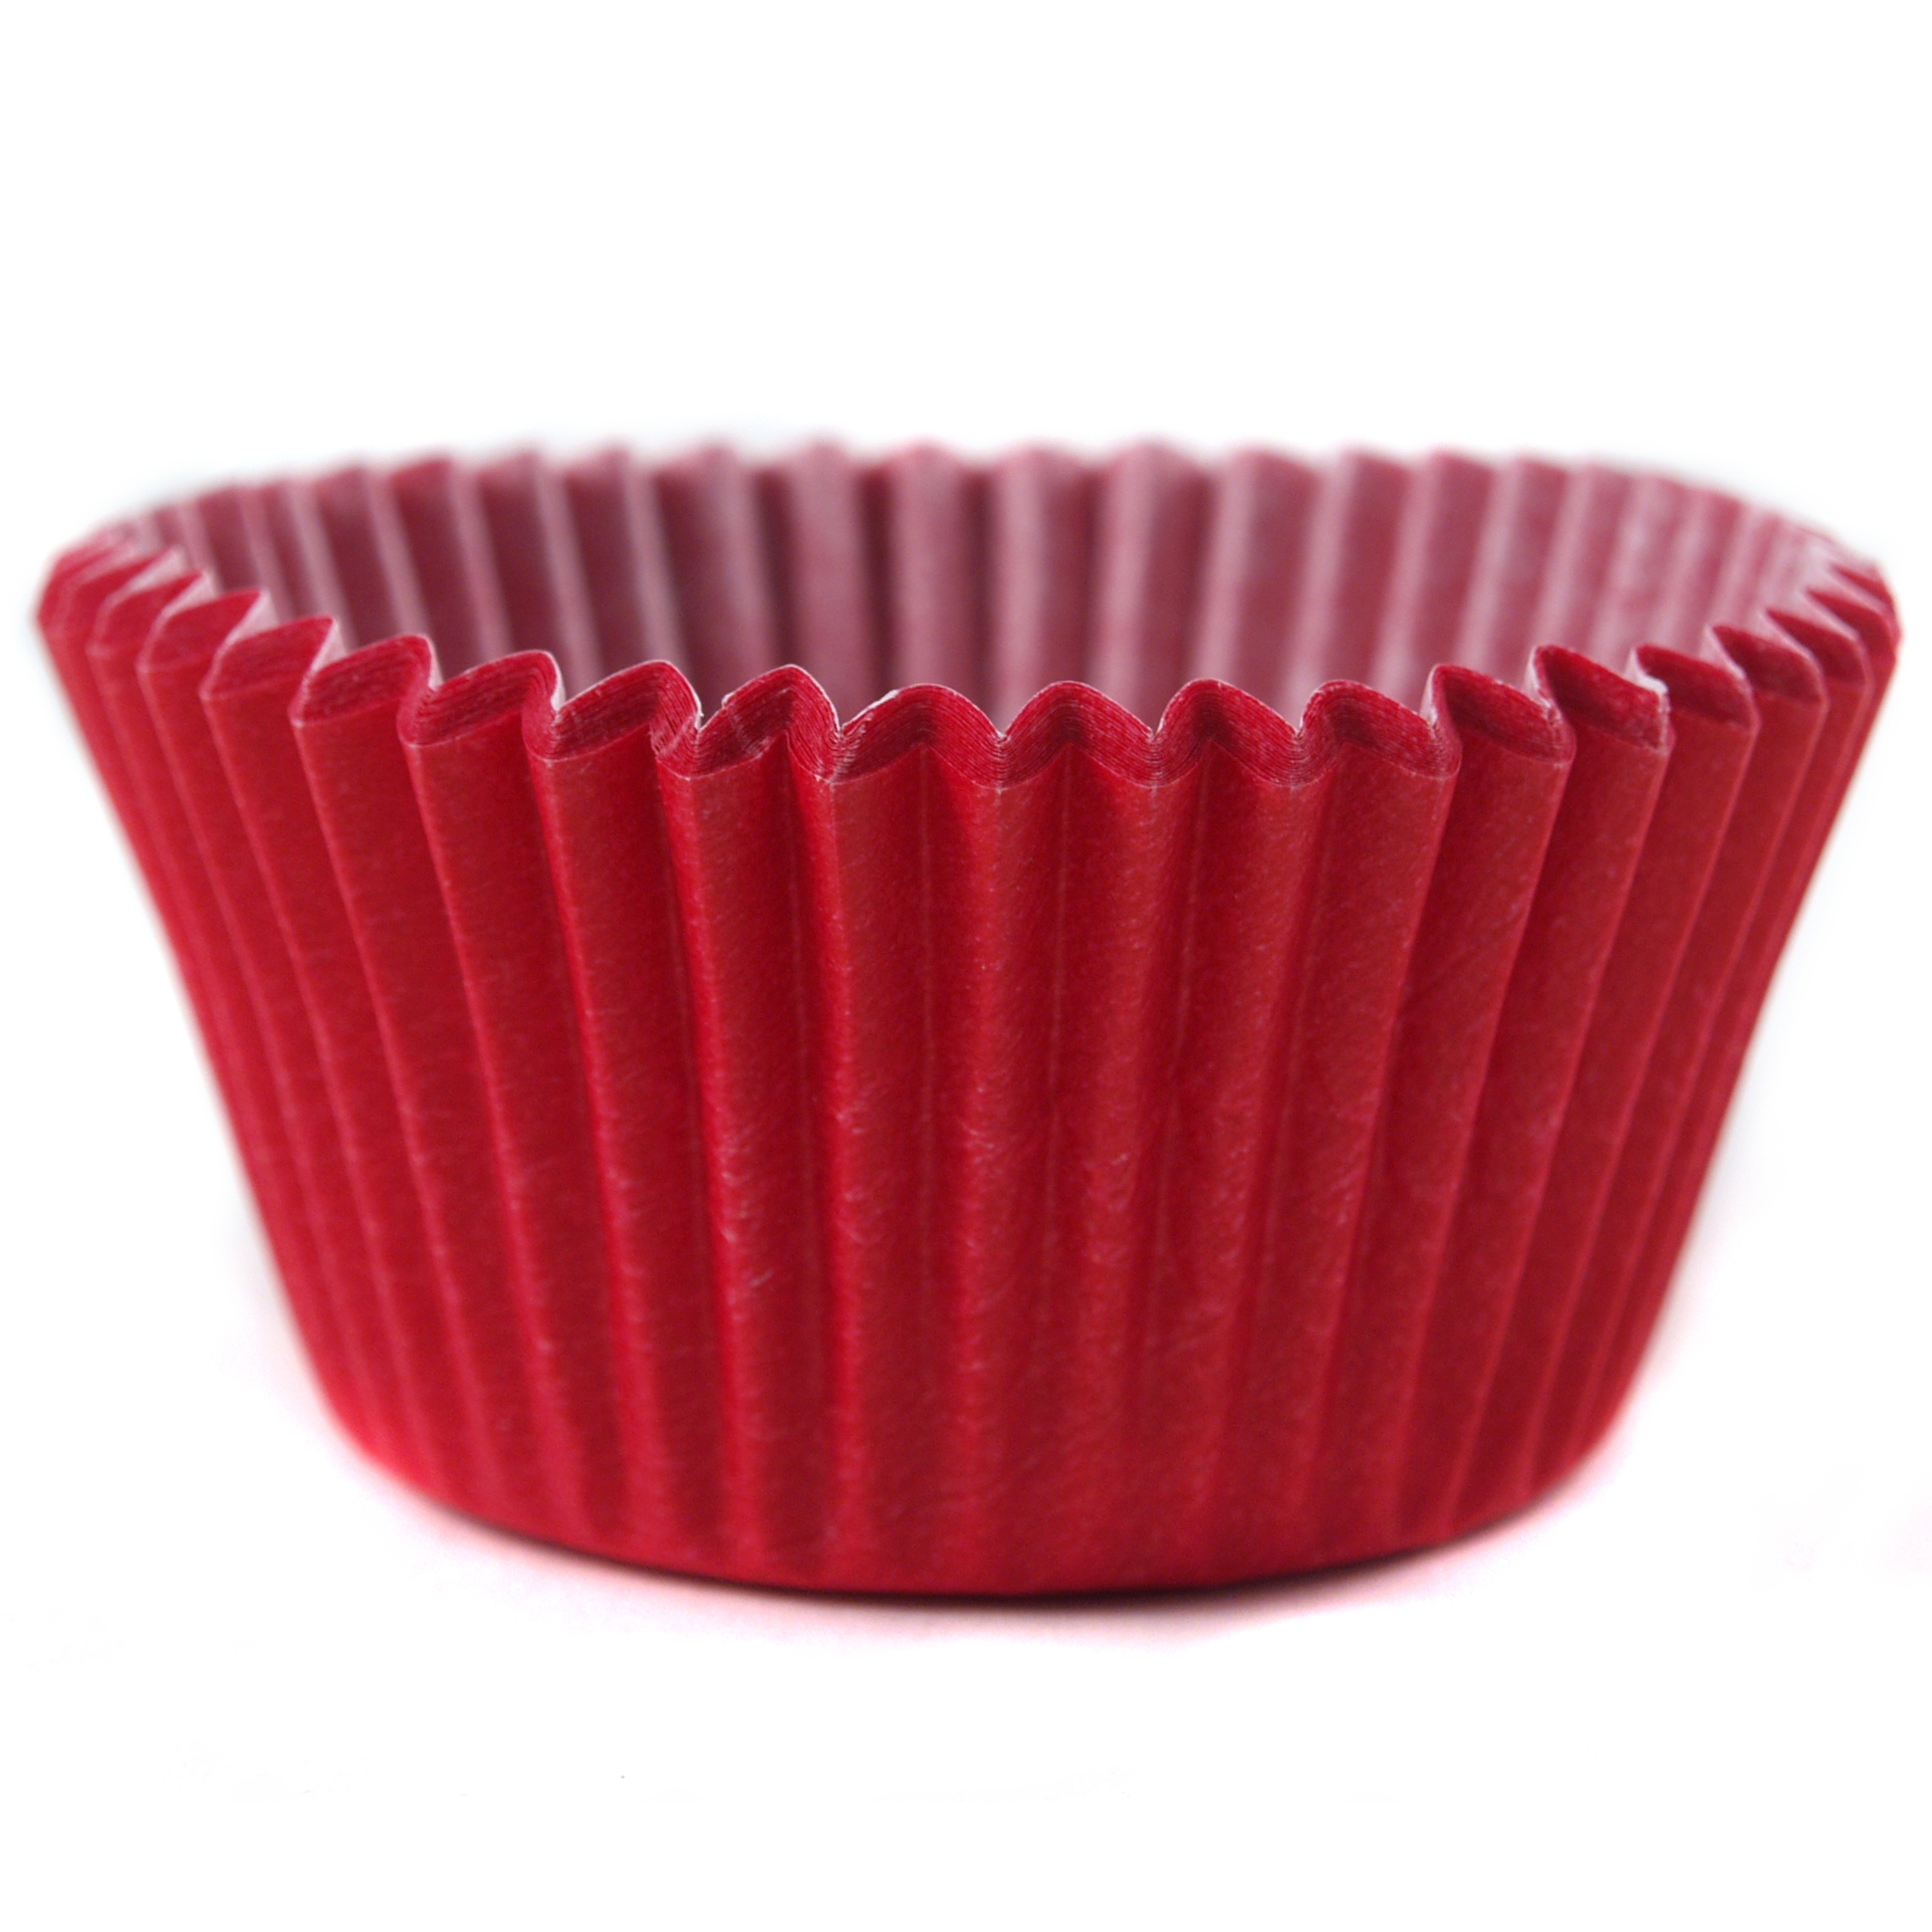 Cupcake Creations Red Mini Baking Cup, Set of 60